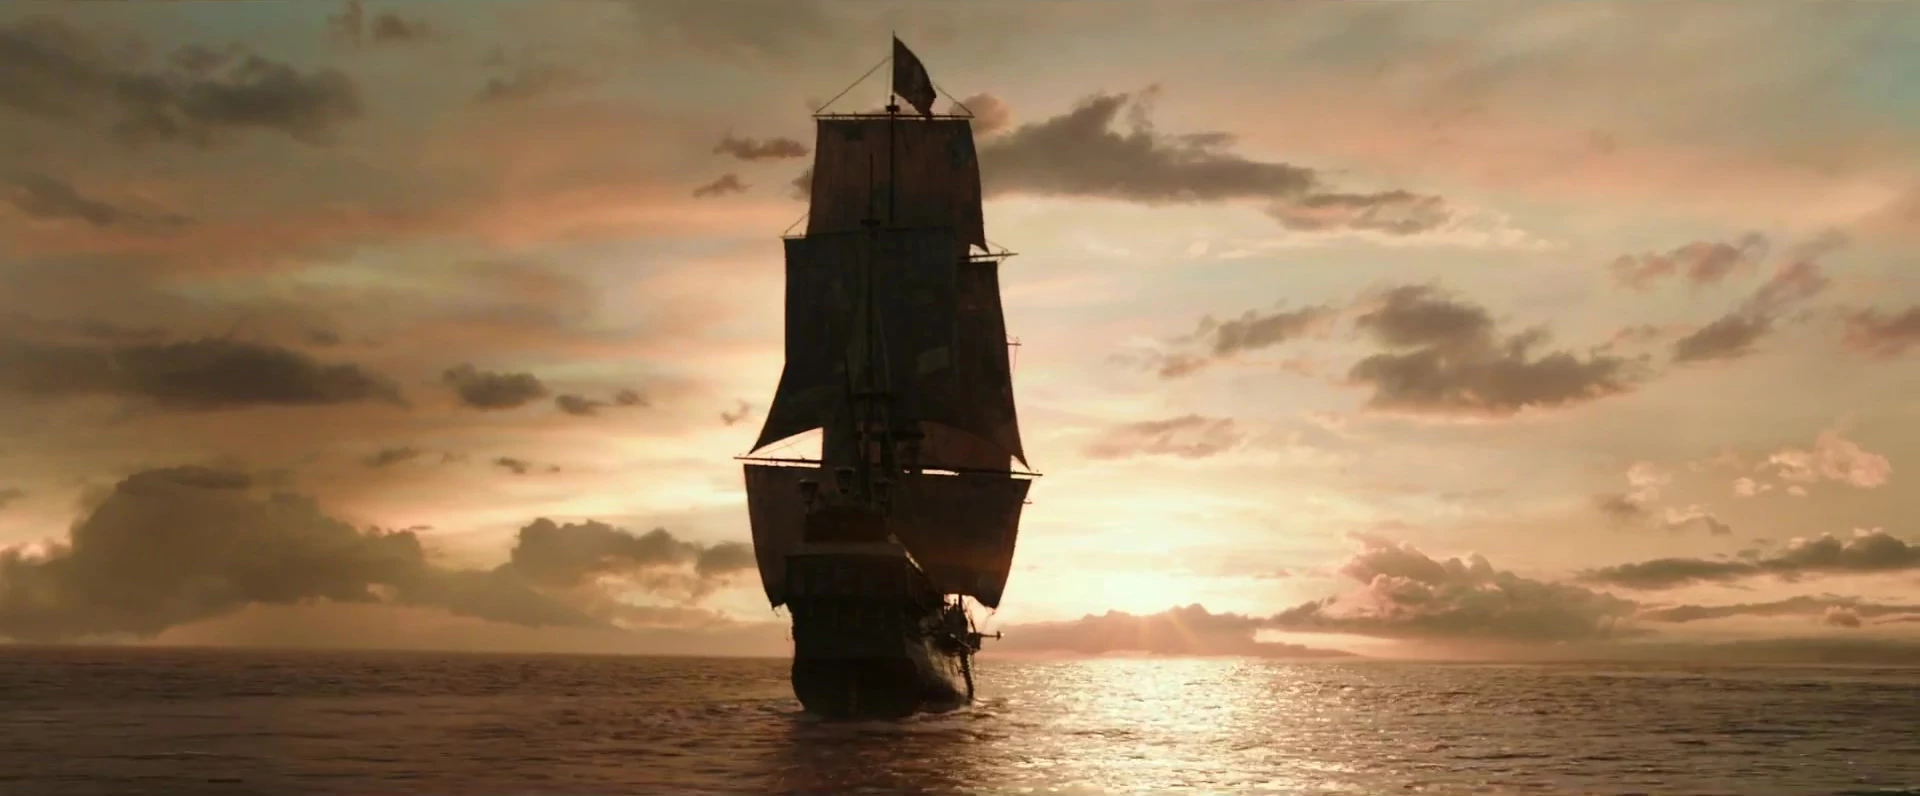 Pirates Of The Caribbean Dead Men Tell No Tales Potc Wiki Ship Diagram With Labels Google Search Pirate Ships Black Pearl Sails Into Another Adventure